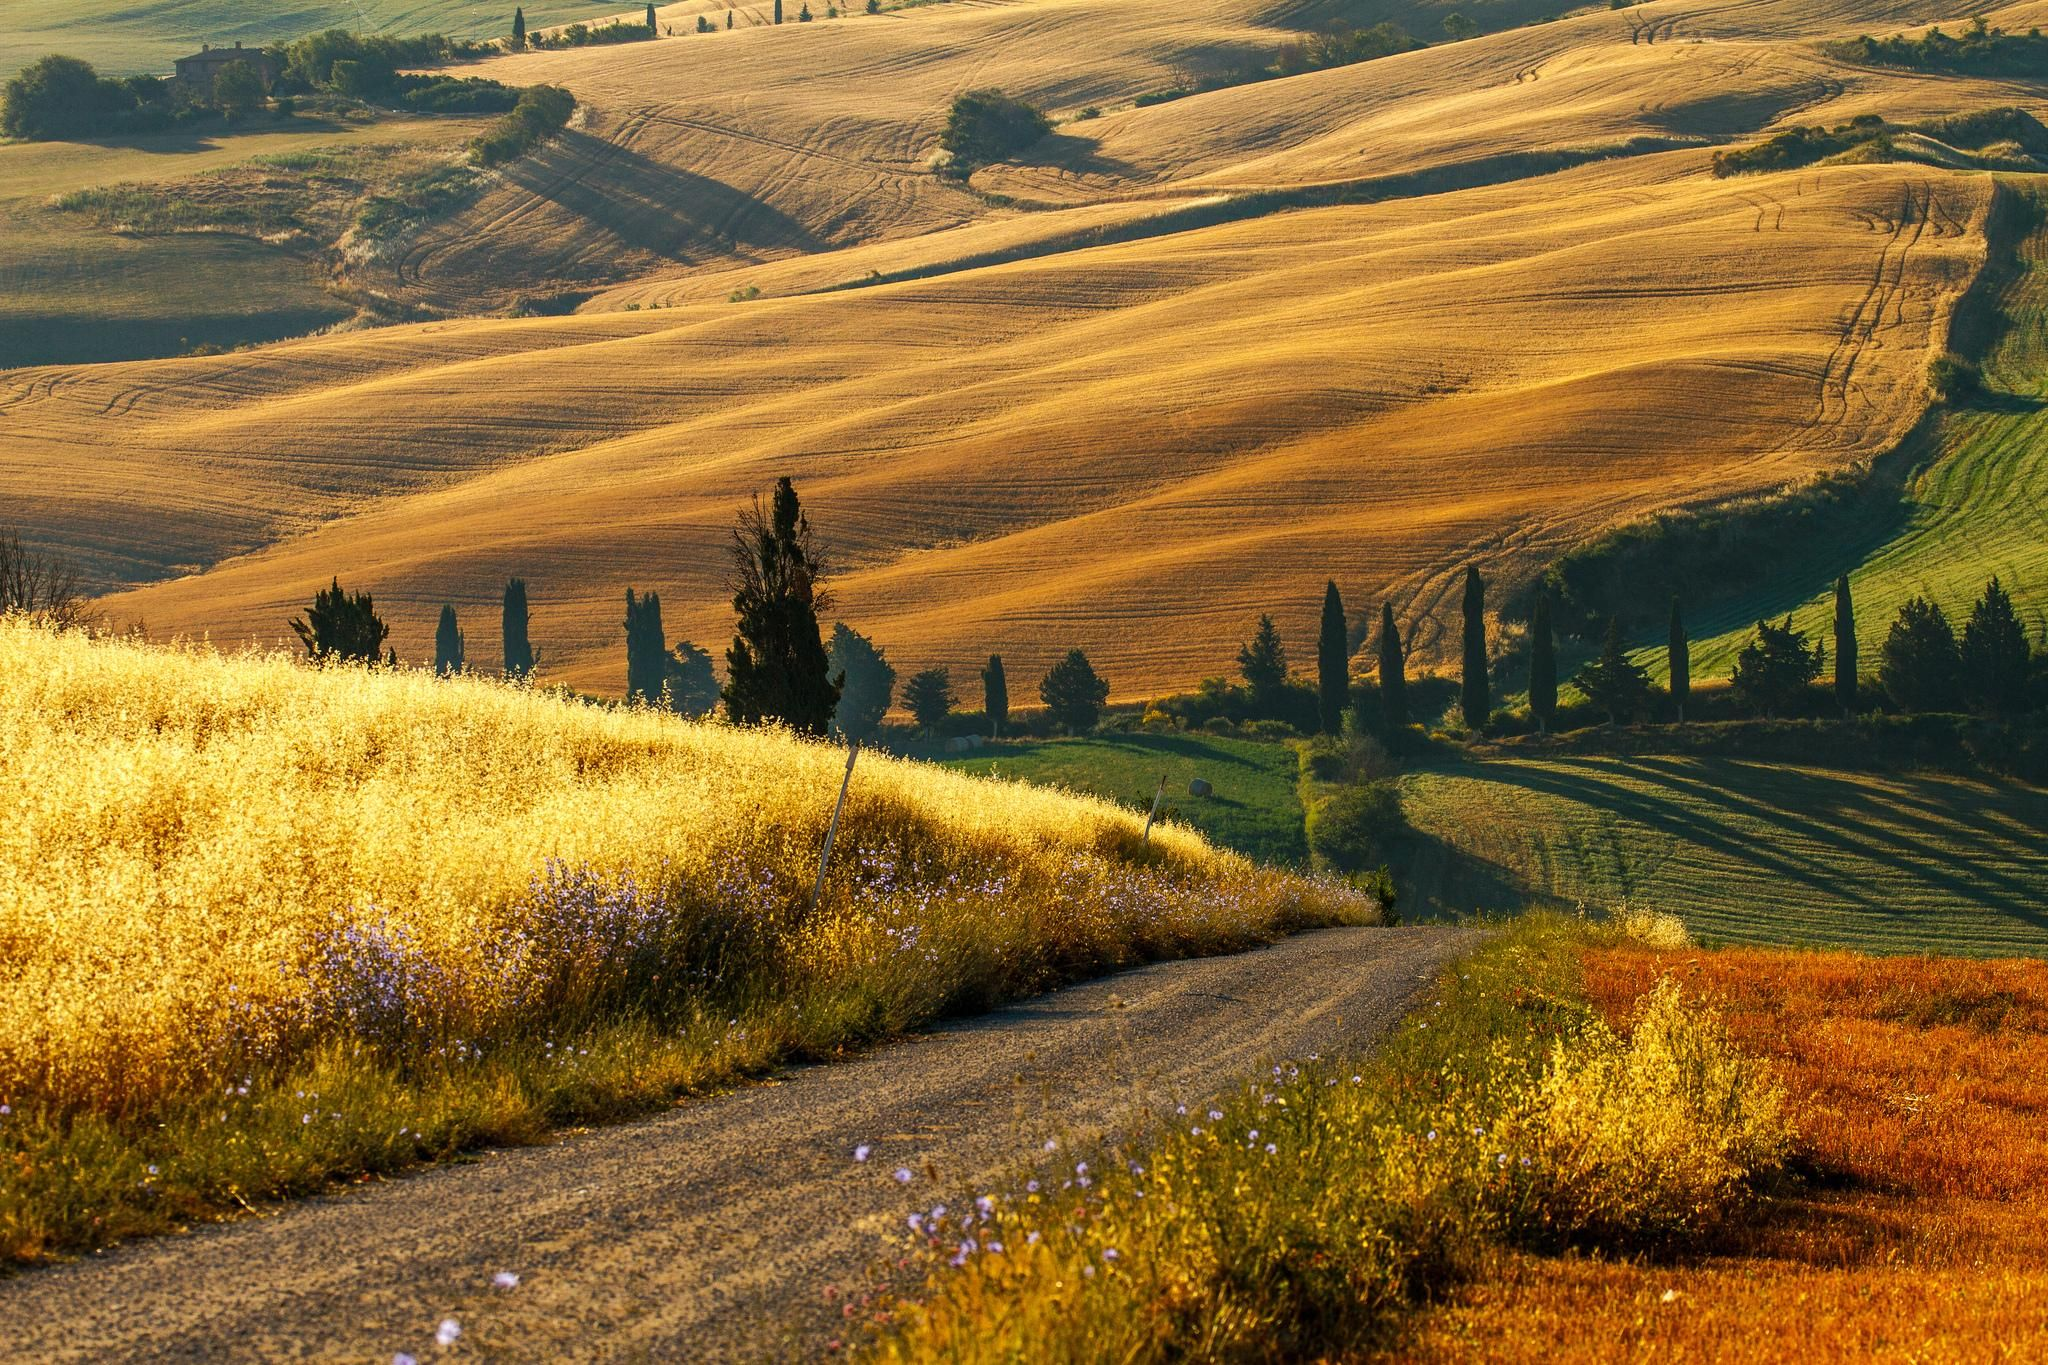 tuscany countryside | | Under the Tuscan Sun | Pinterest ... for French Countryside Wallpaper  113cpg